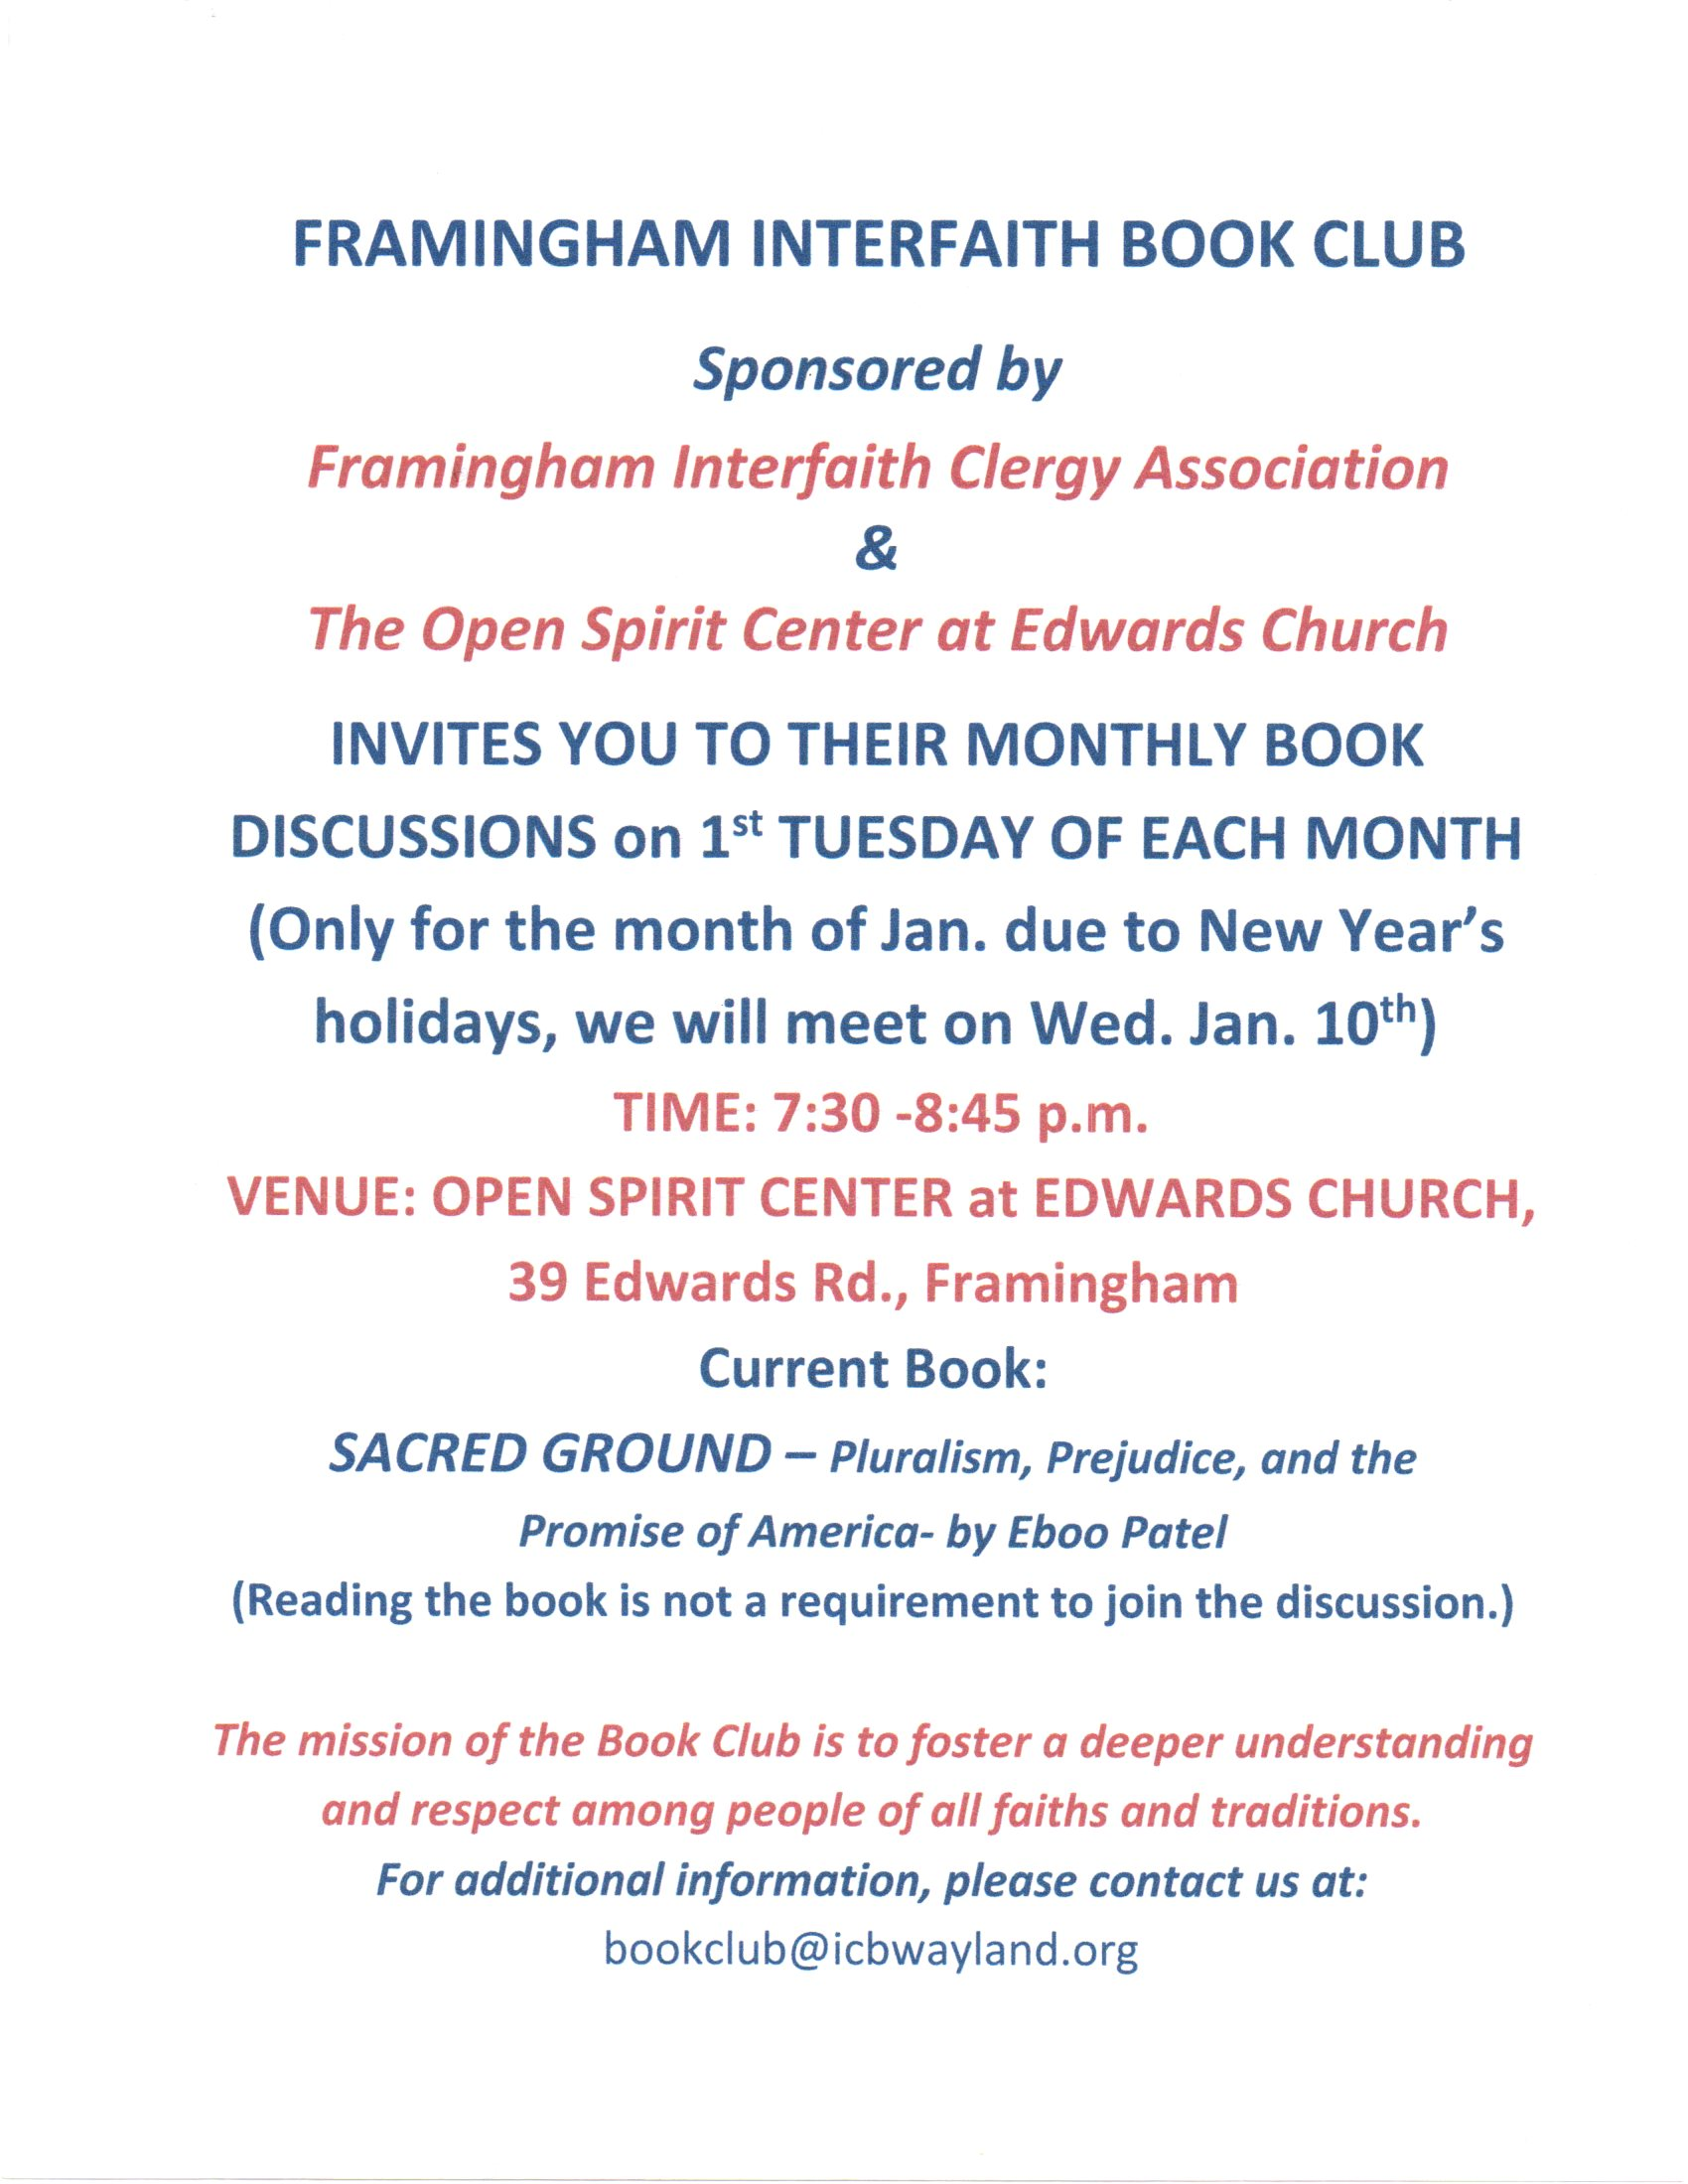 Framingham Interfaith Book club20171215 09124846